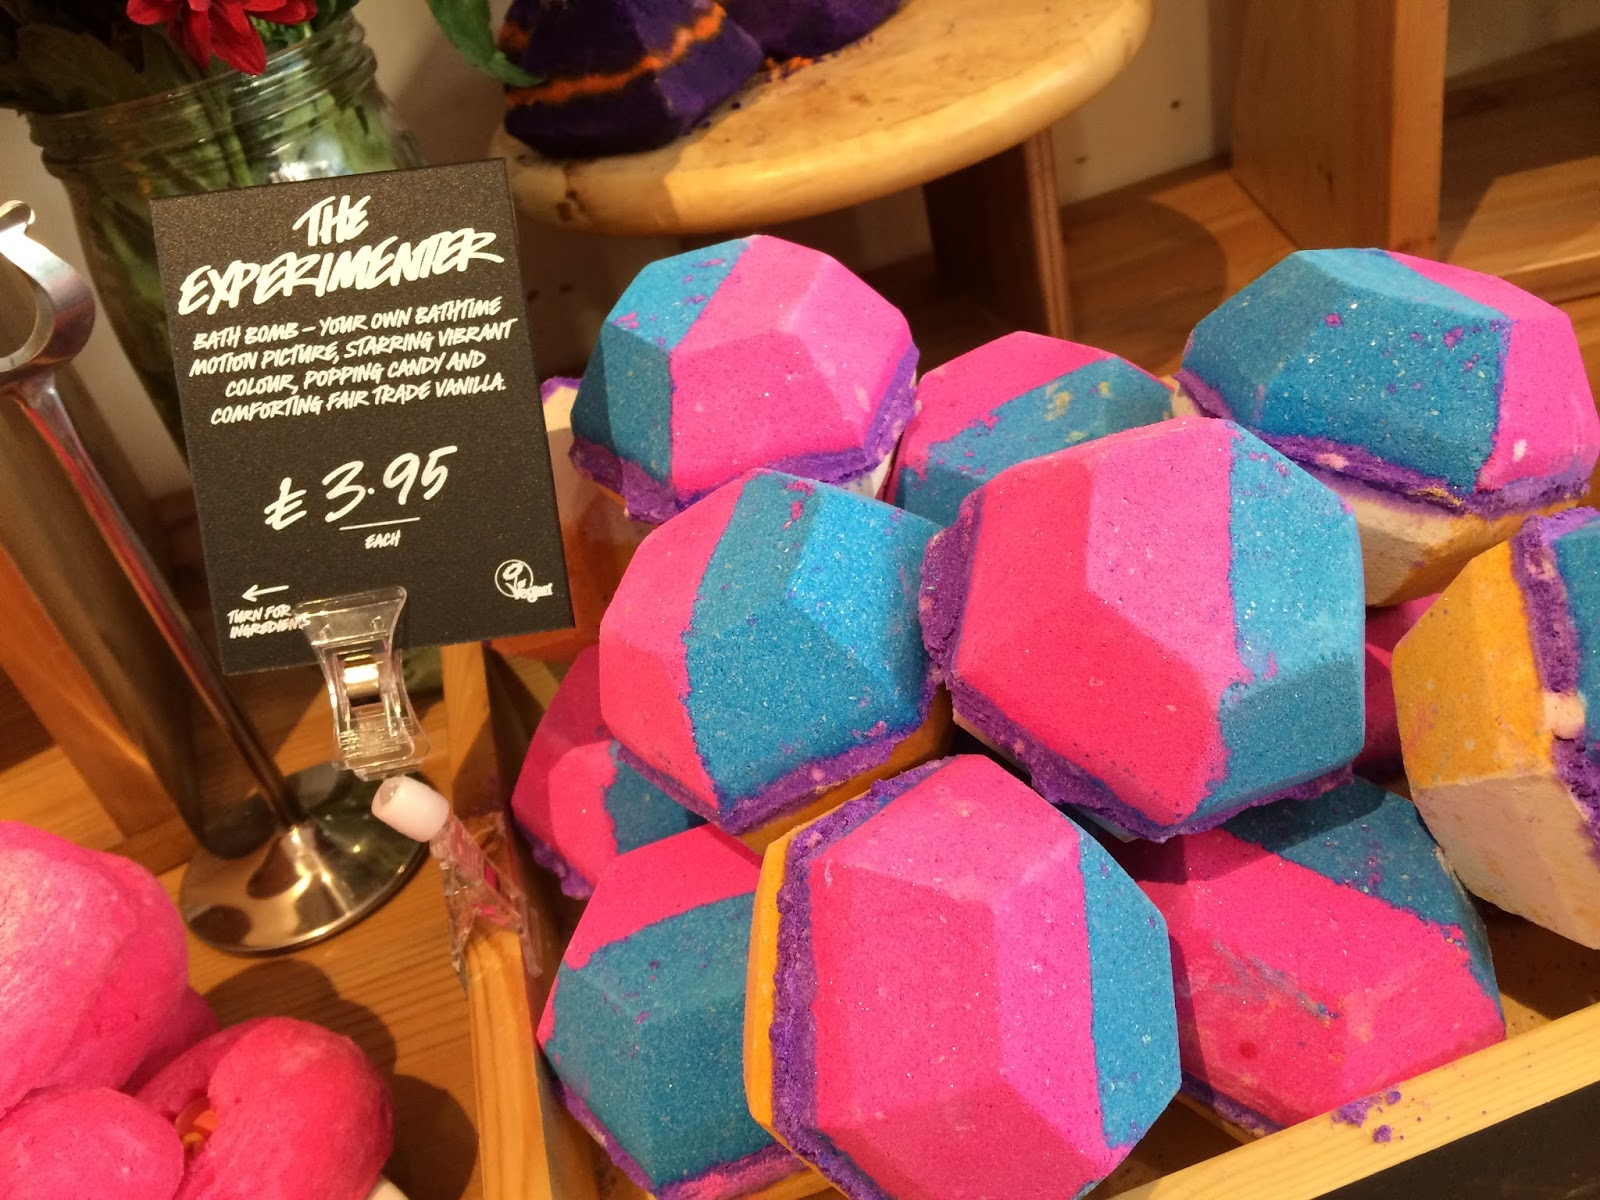 Lush Leicester bath natural organic fair trade experimenter